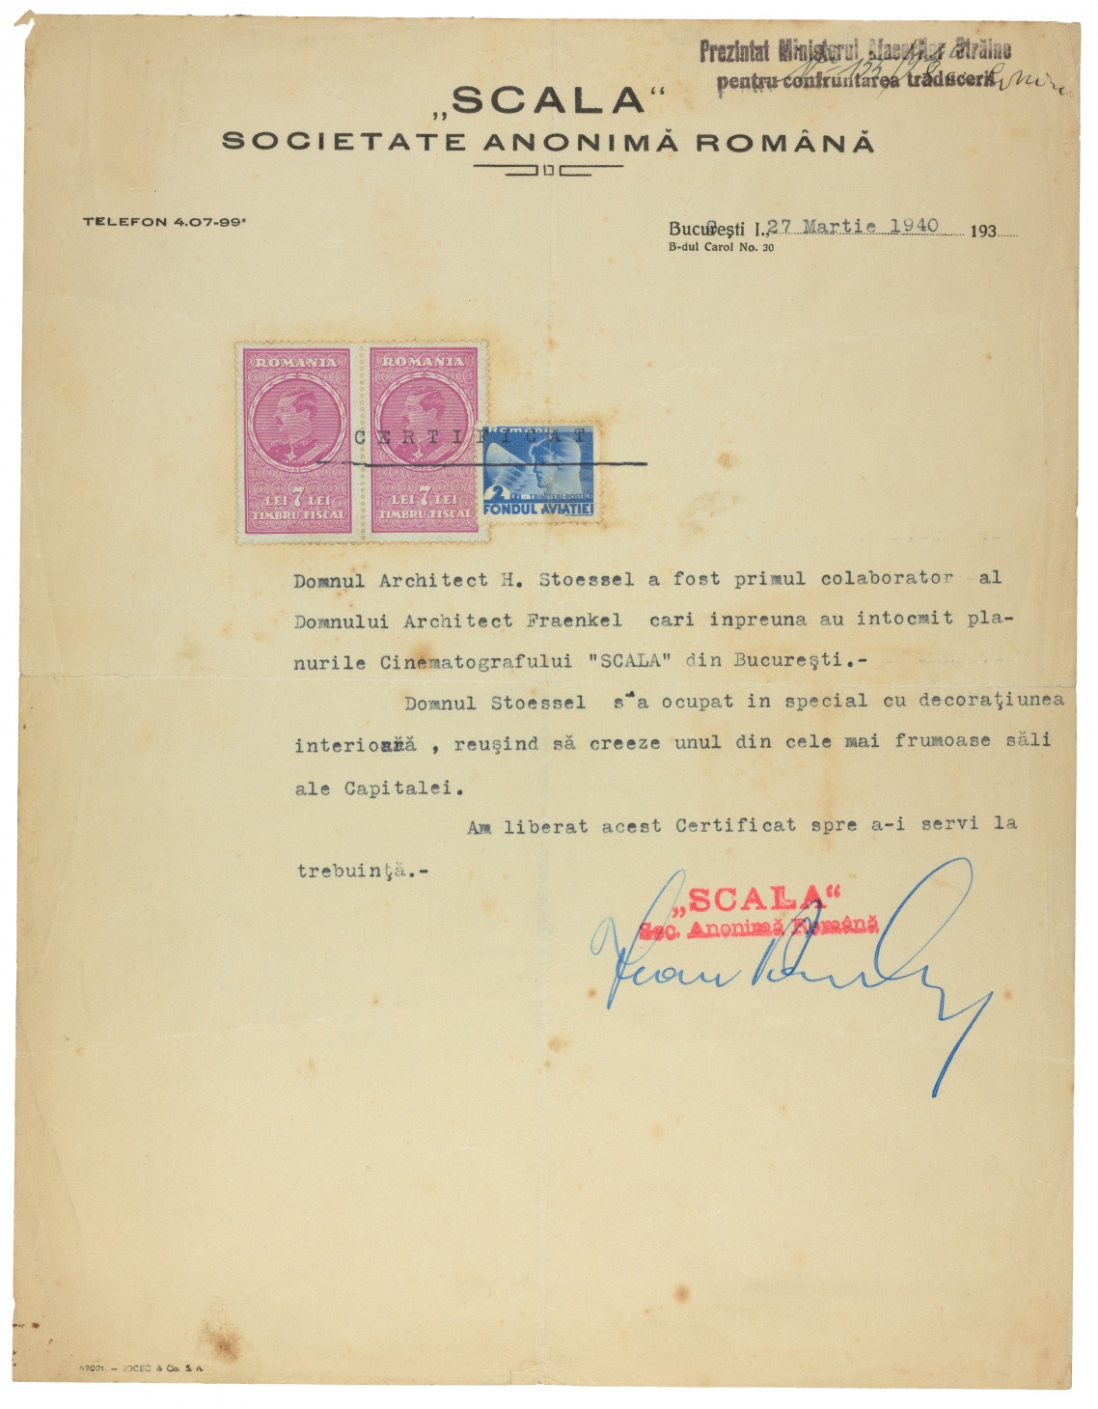 Scala letter reference 1940